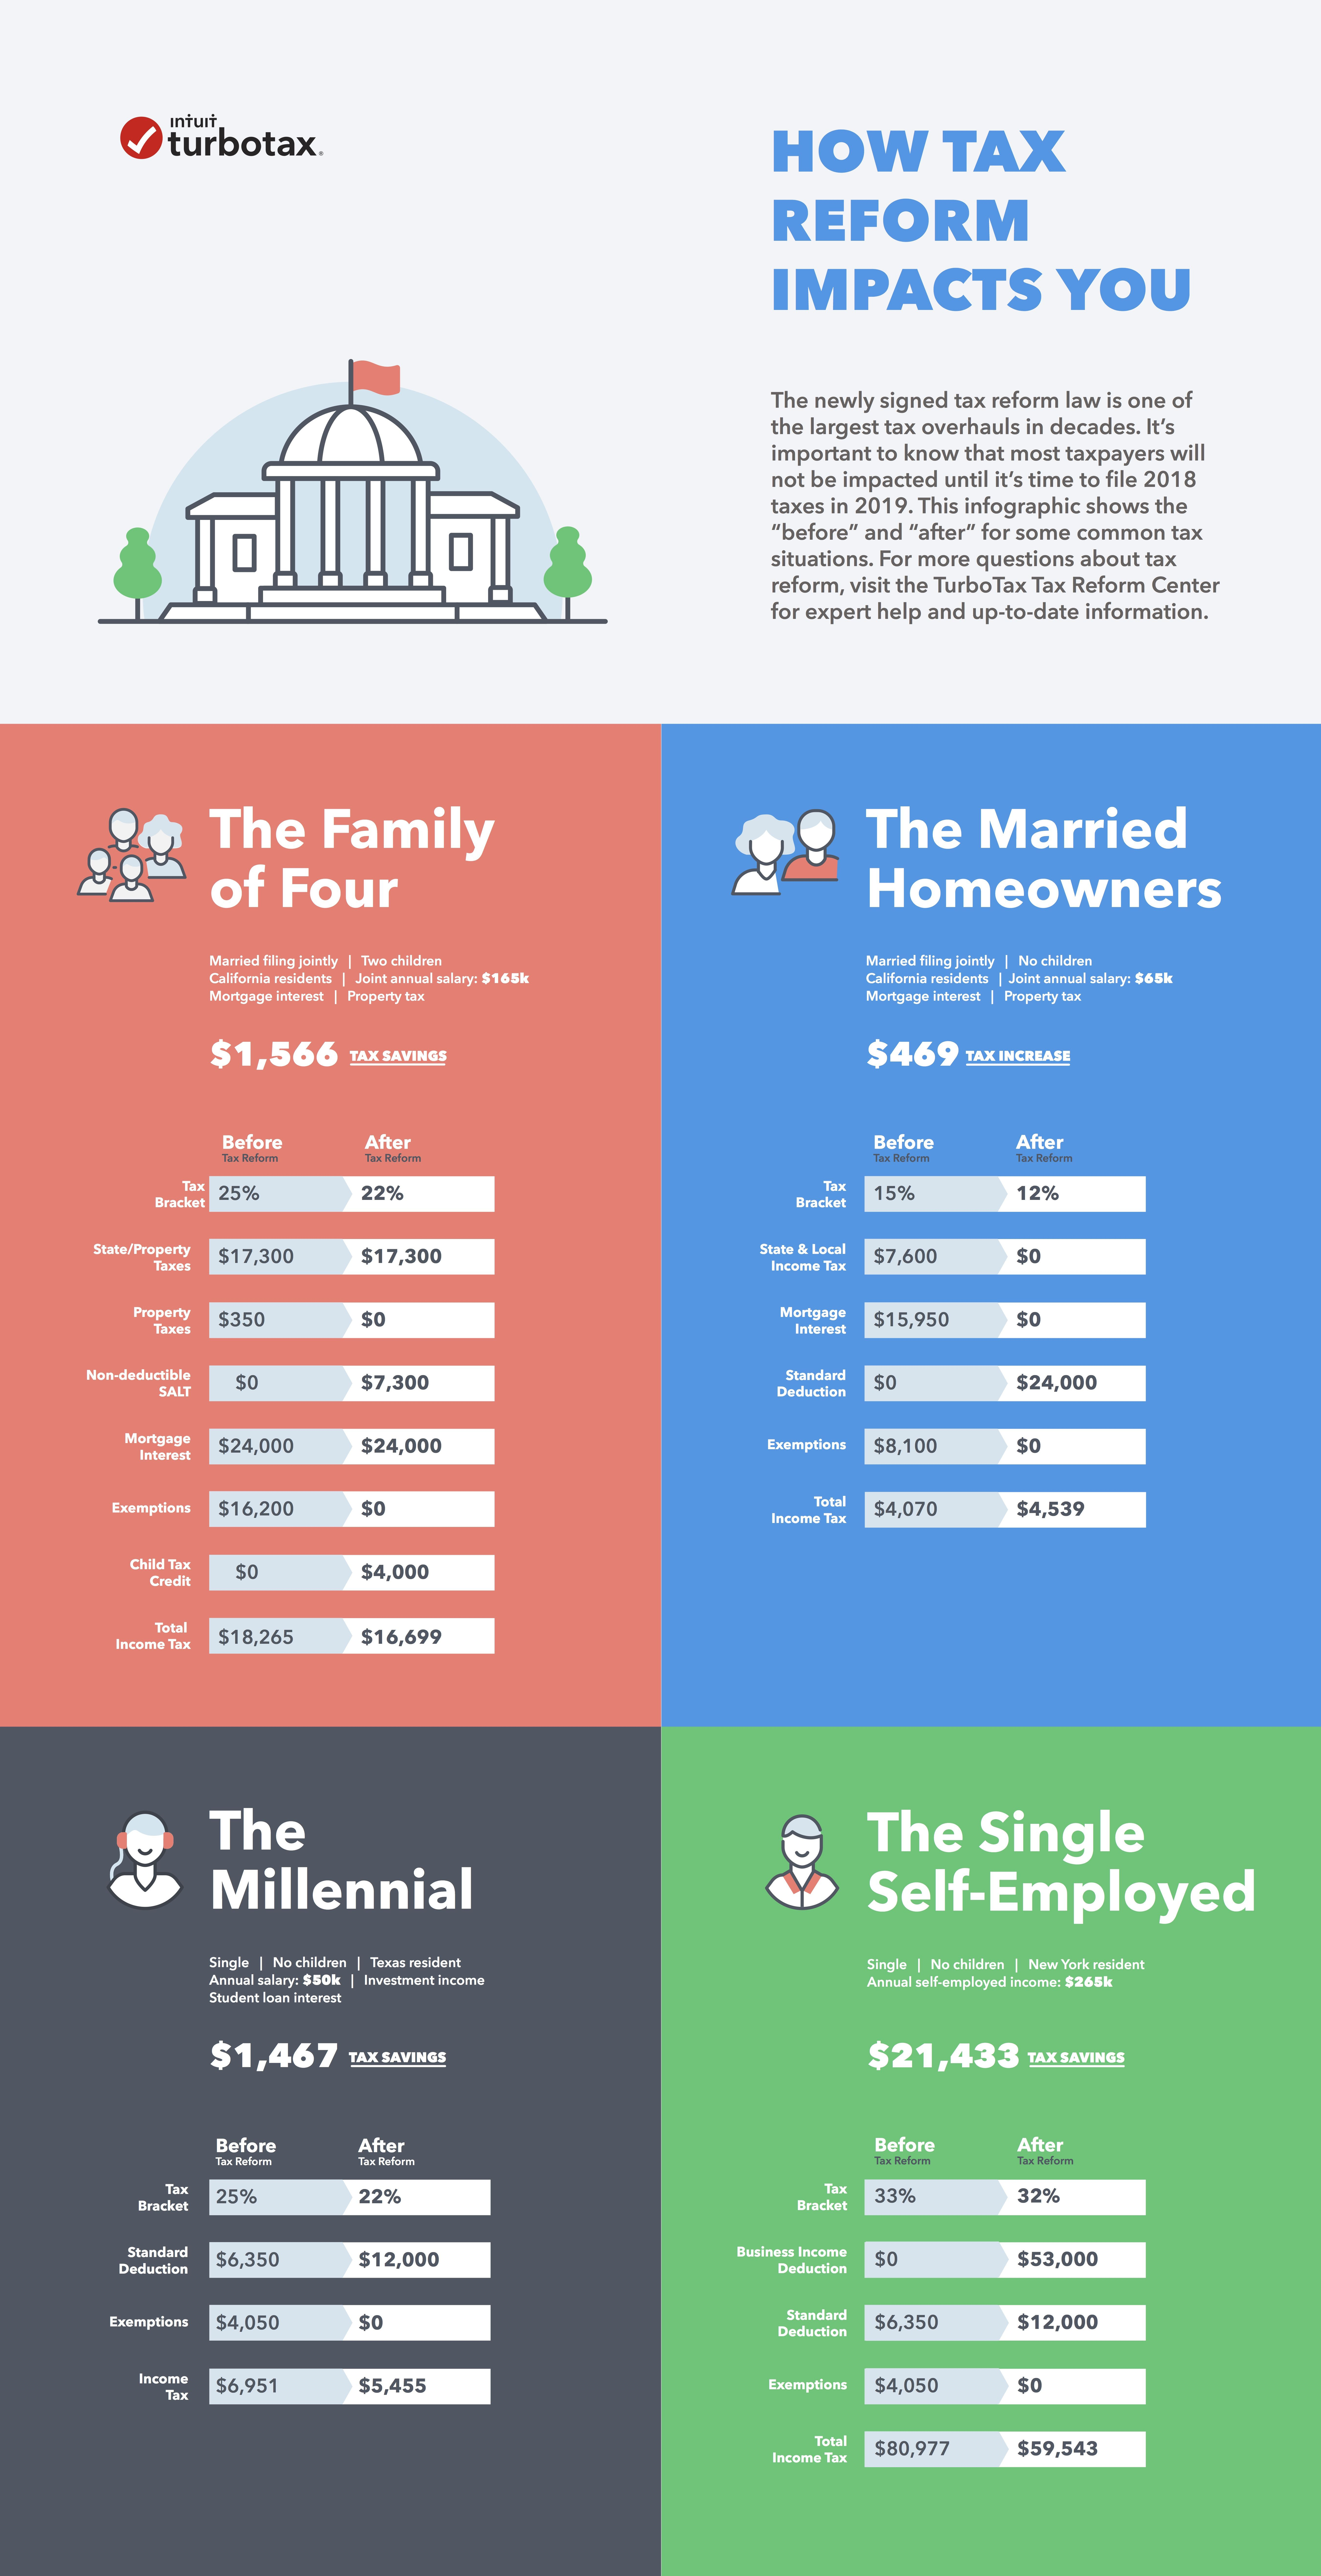 How tax reform impacts you infographic infographic